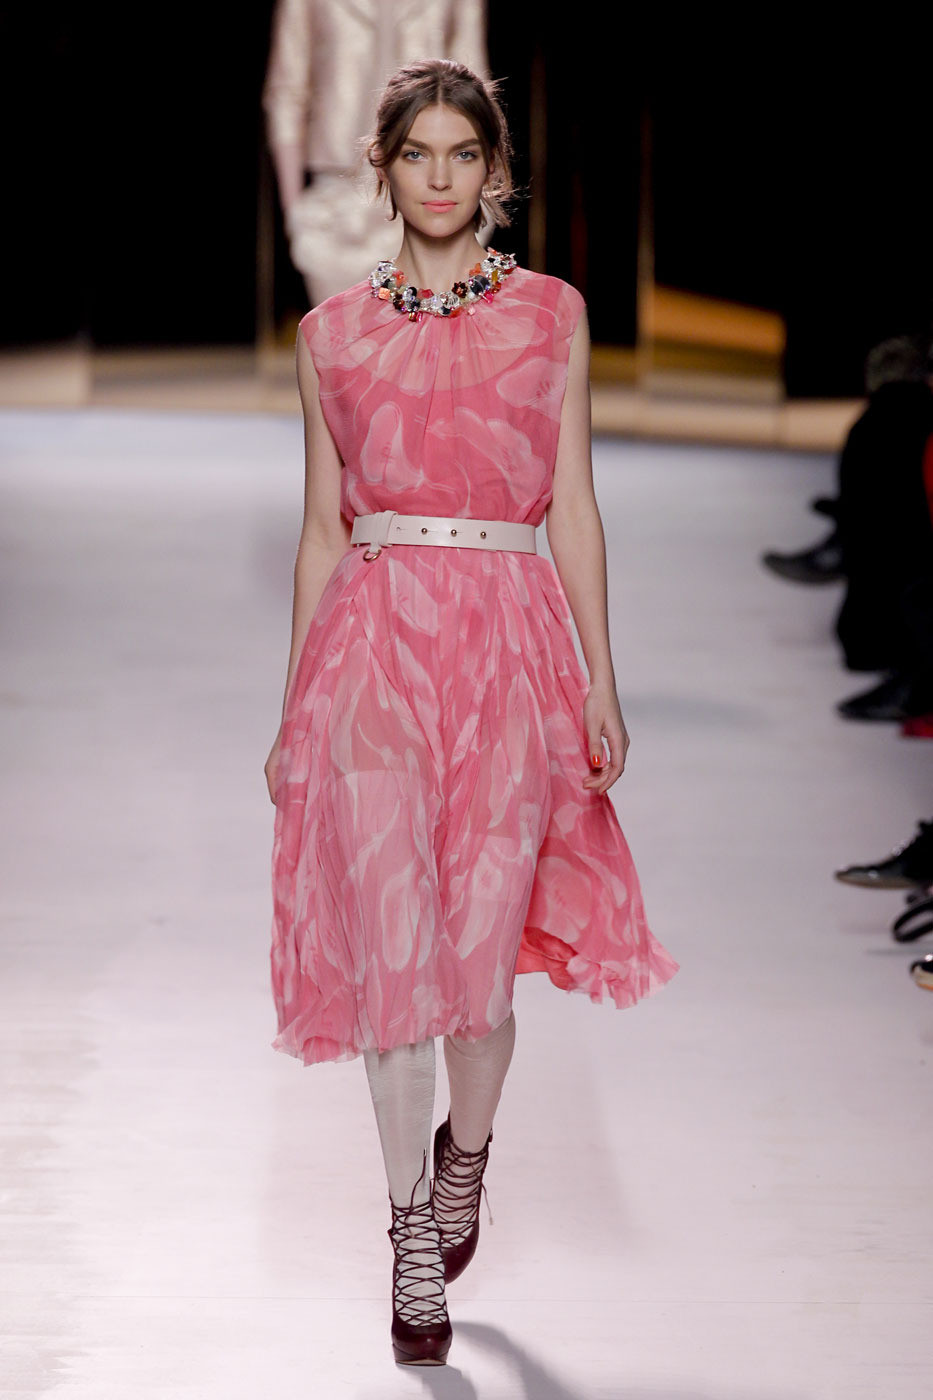 via fashioned by love | Nina Ricci Fall/Winter 2011 collection